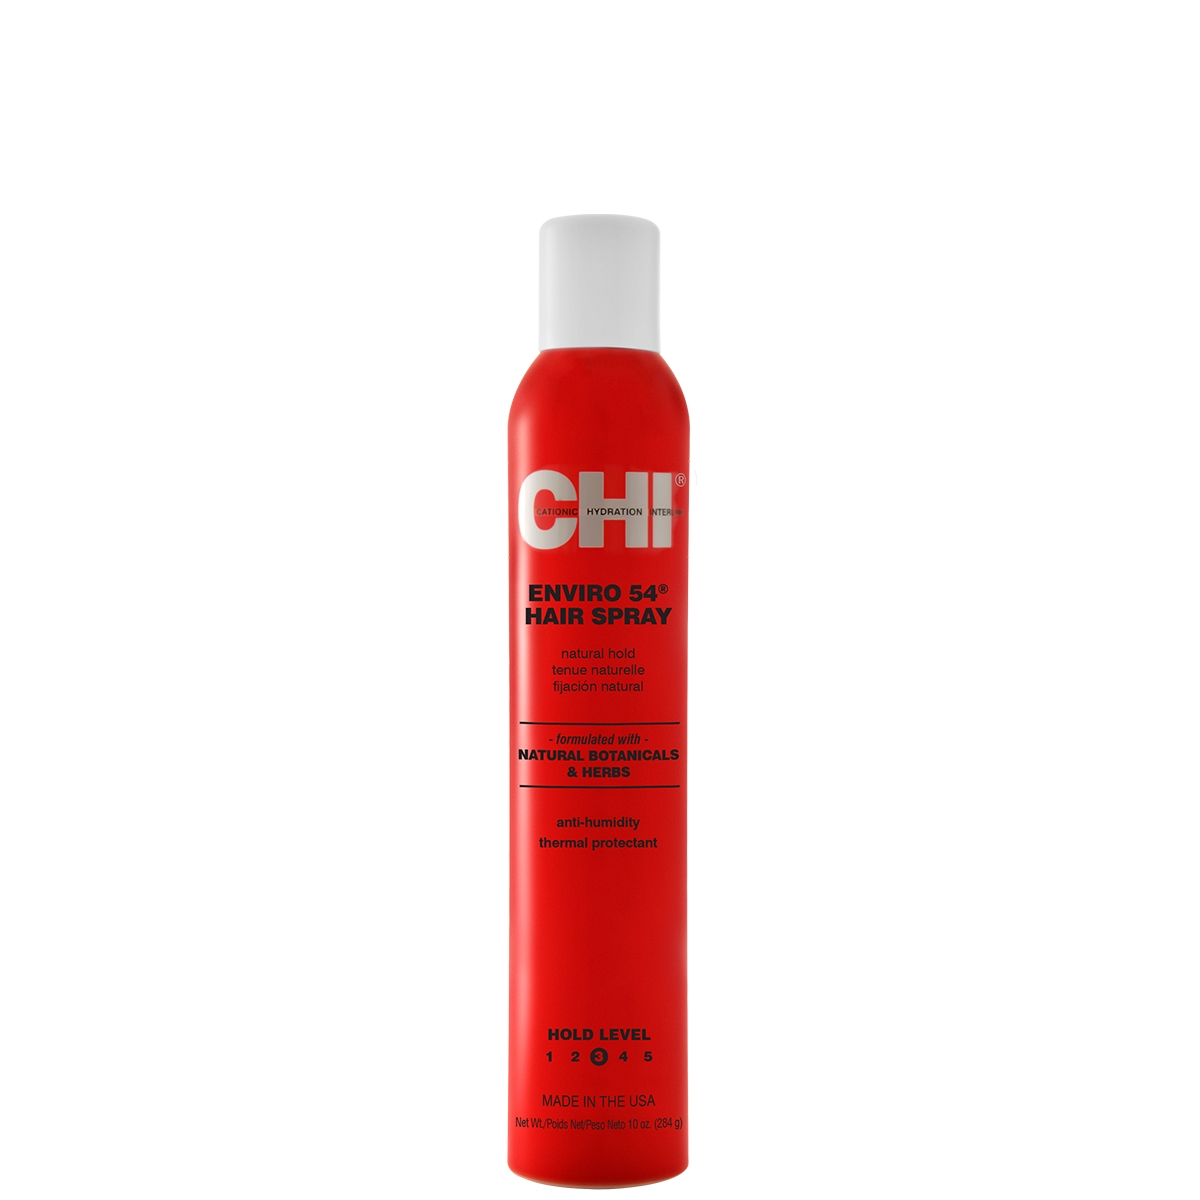 CHI Enviro 54 - Natural Hold 10oz